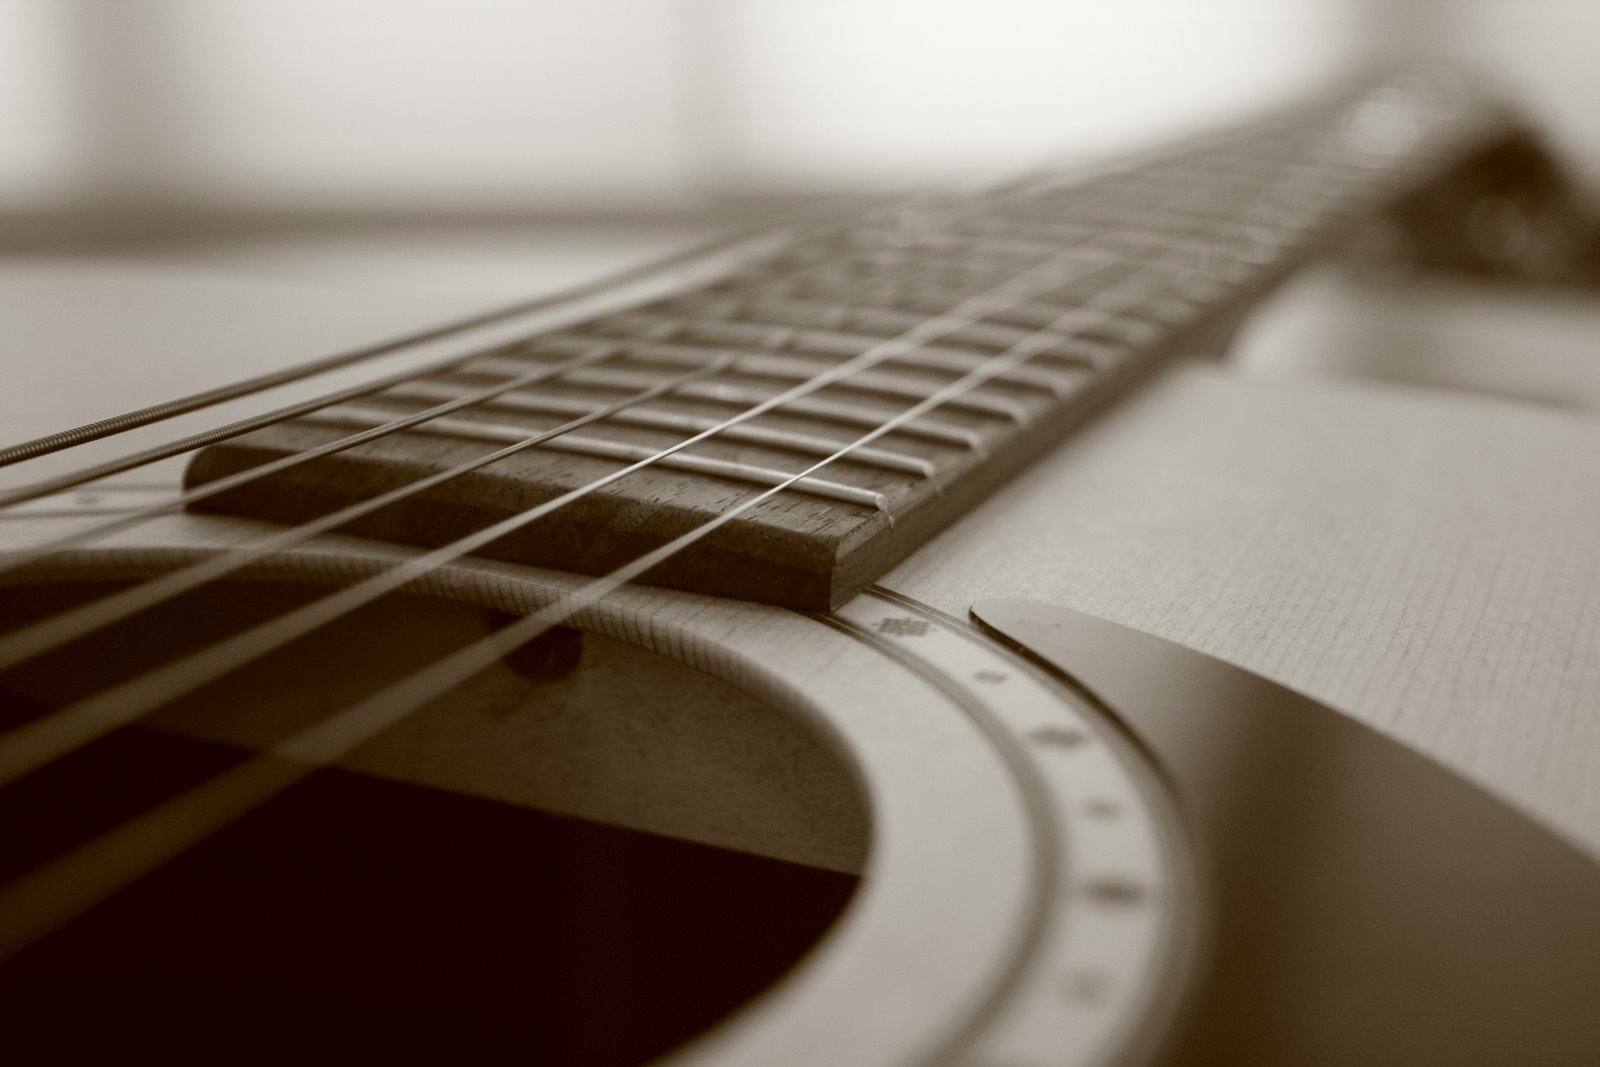 Play Bar Chords Guitar Expand Your Chord Library Quickly How To